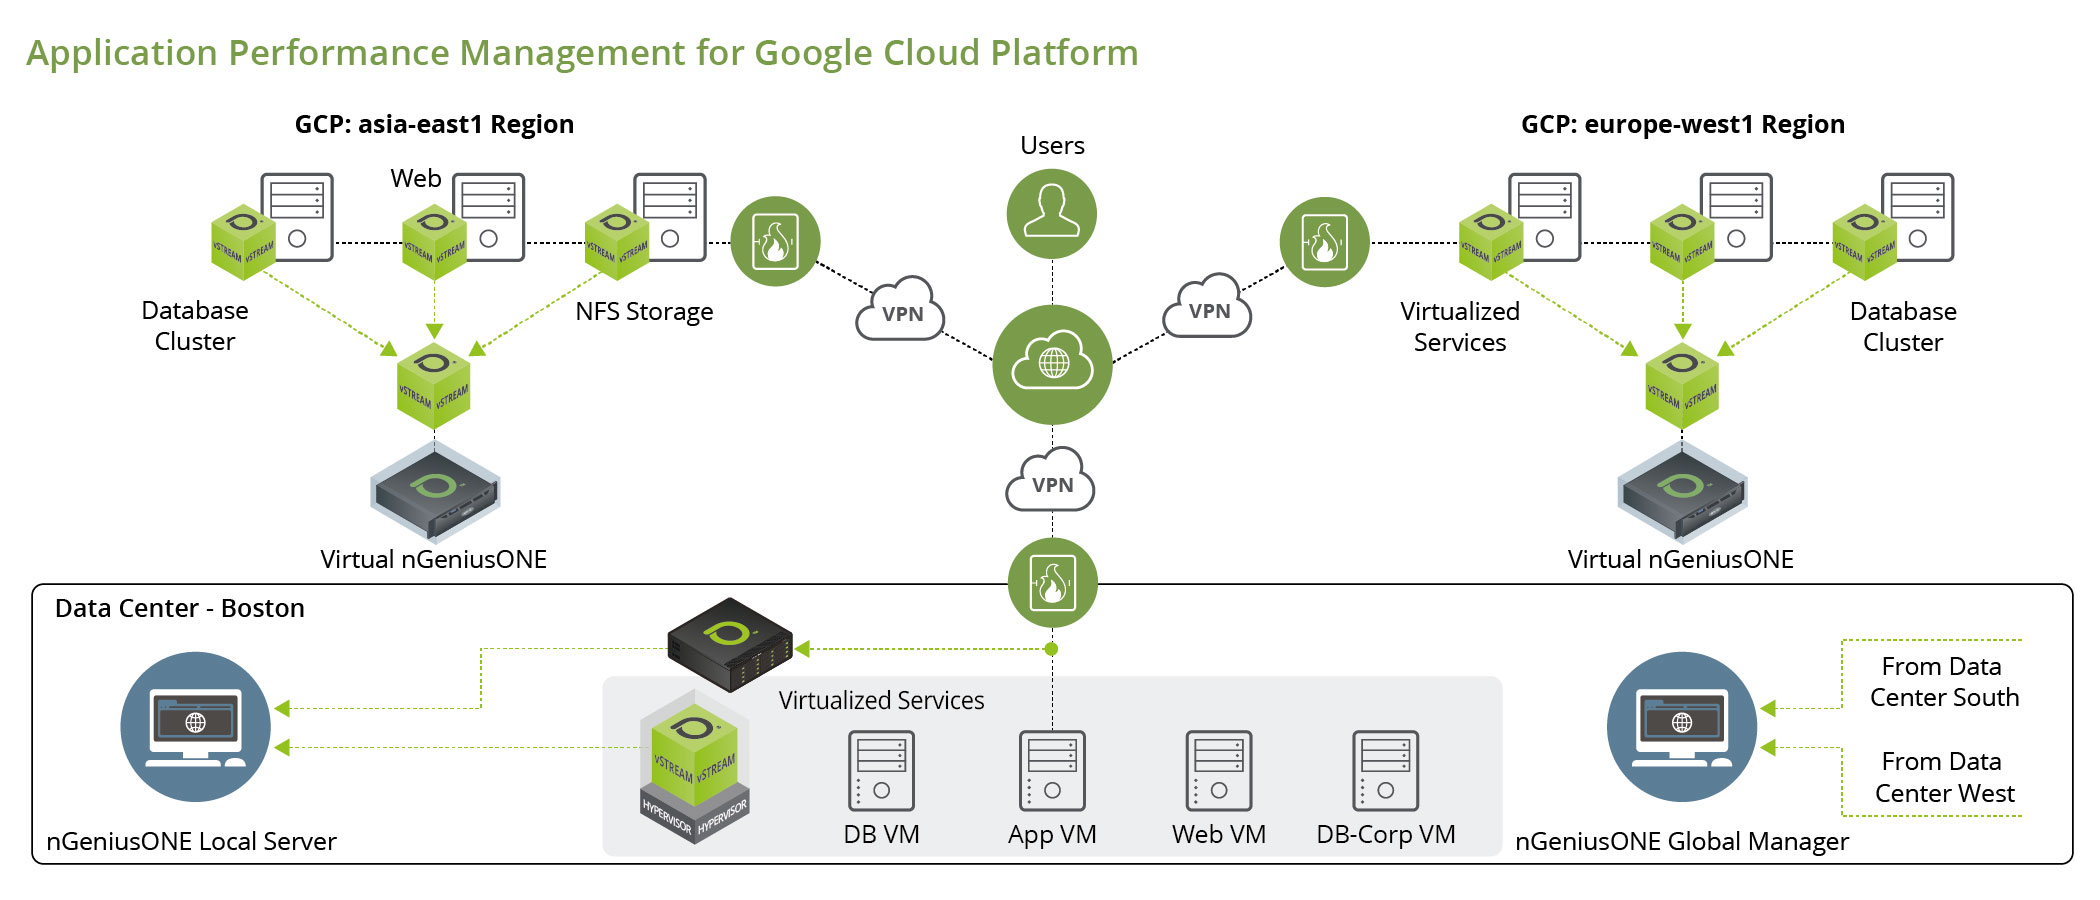 Application Performance Management Diagram for Google Cloud Platform